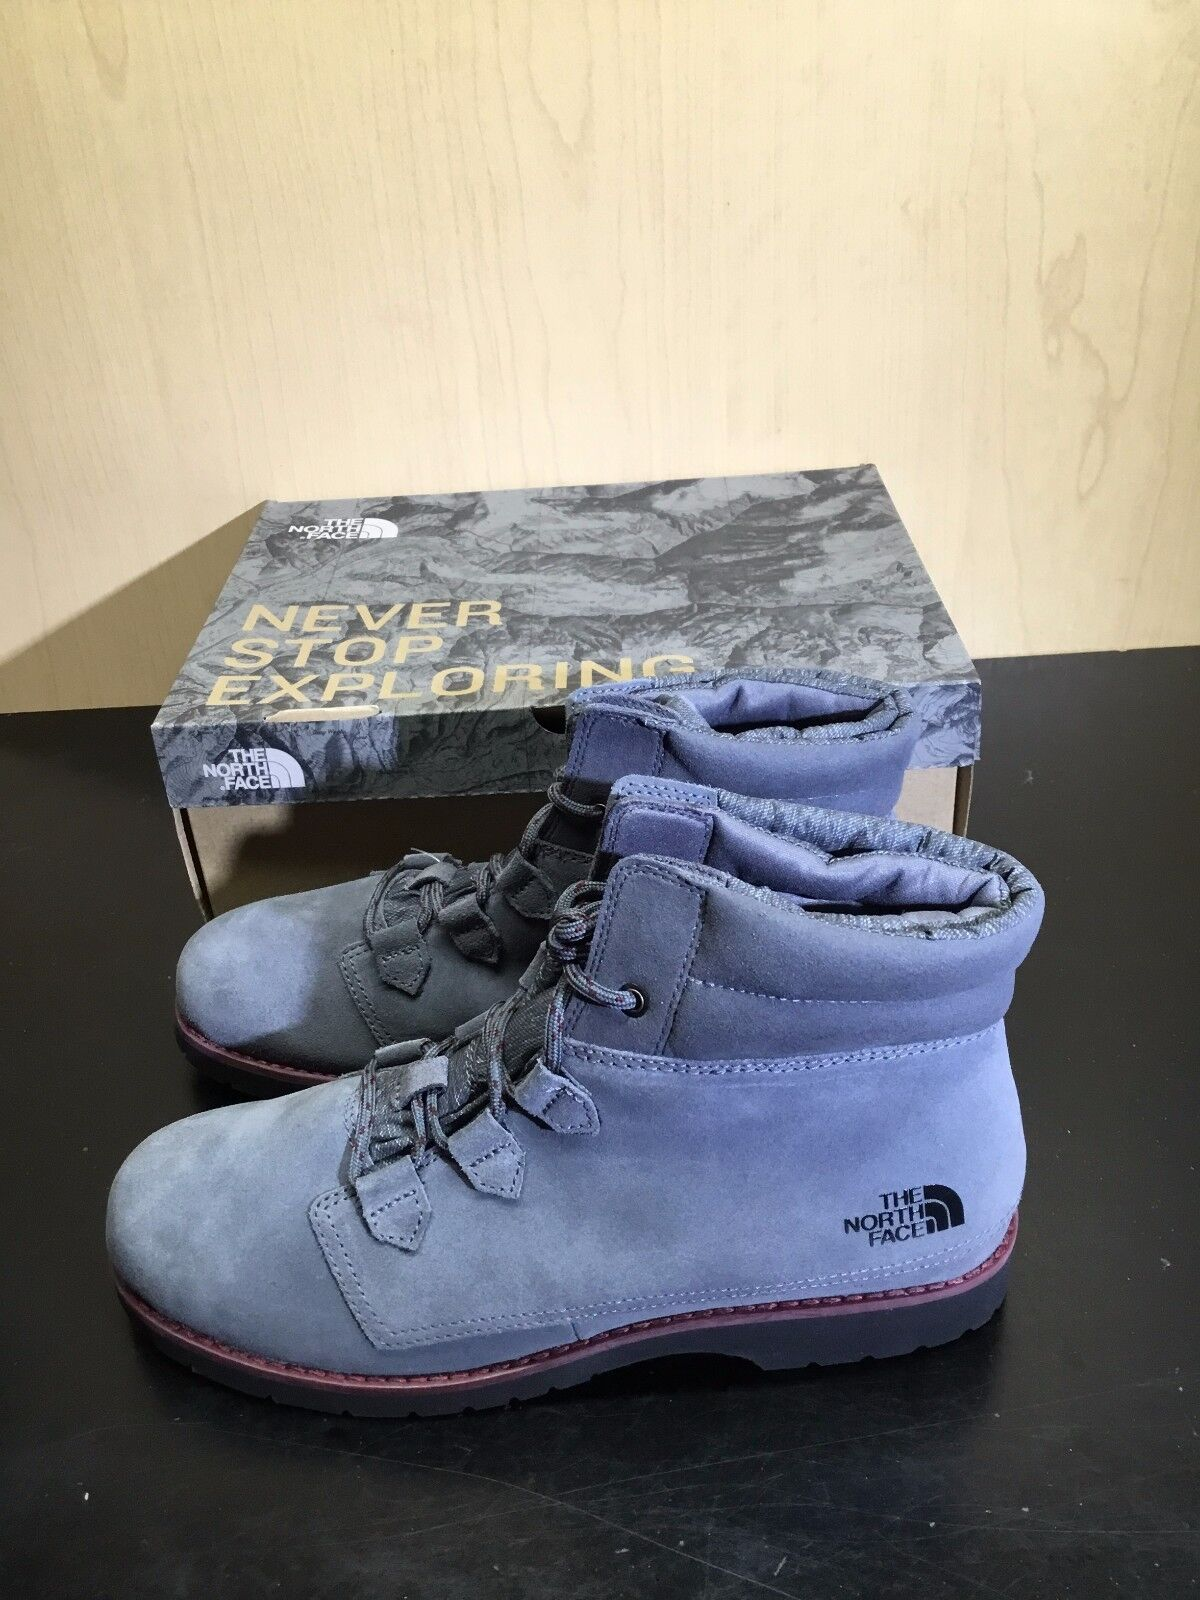 The North Face Ballard Roll Down SE Winter Women Boots New Many Sizes New In Box